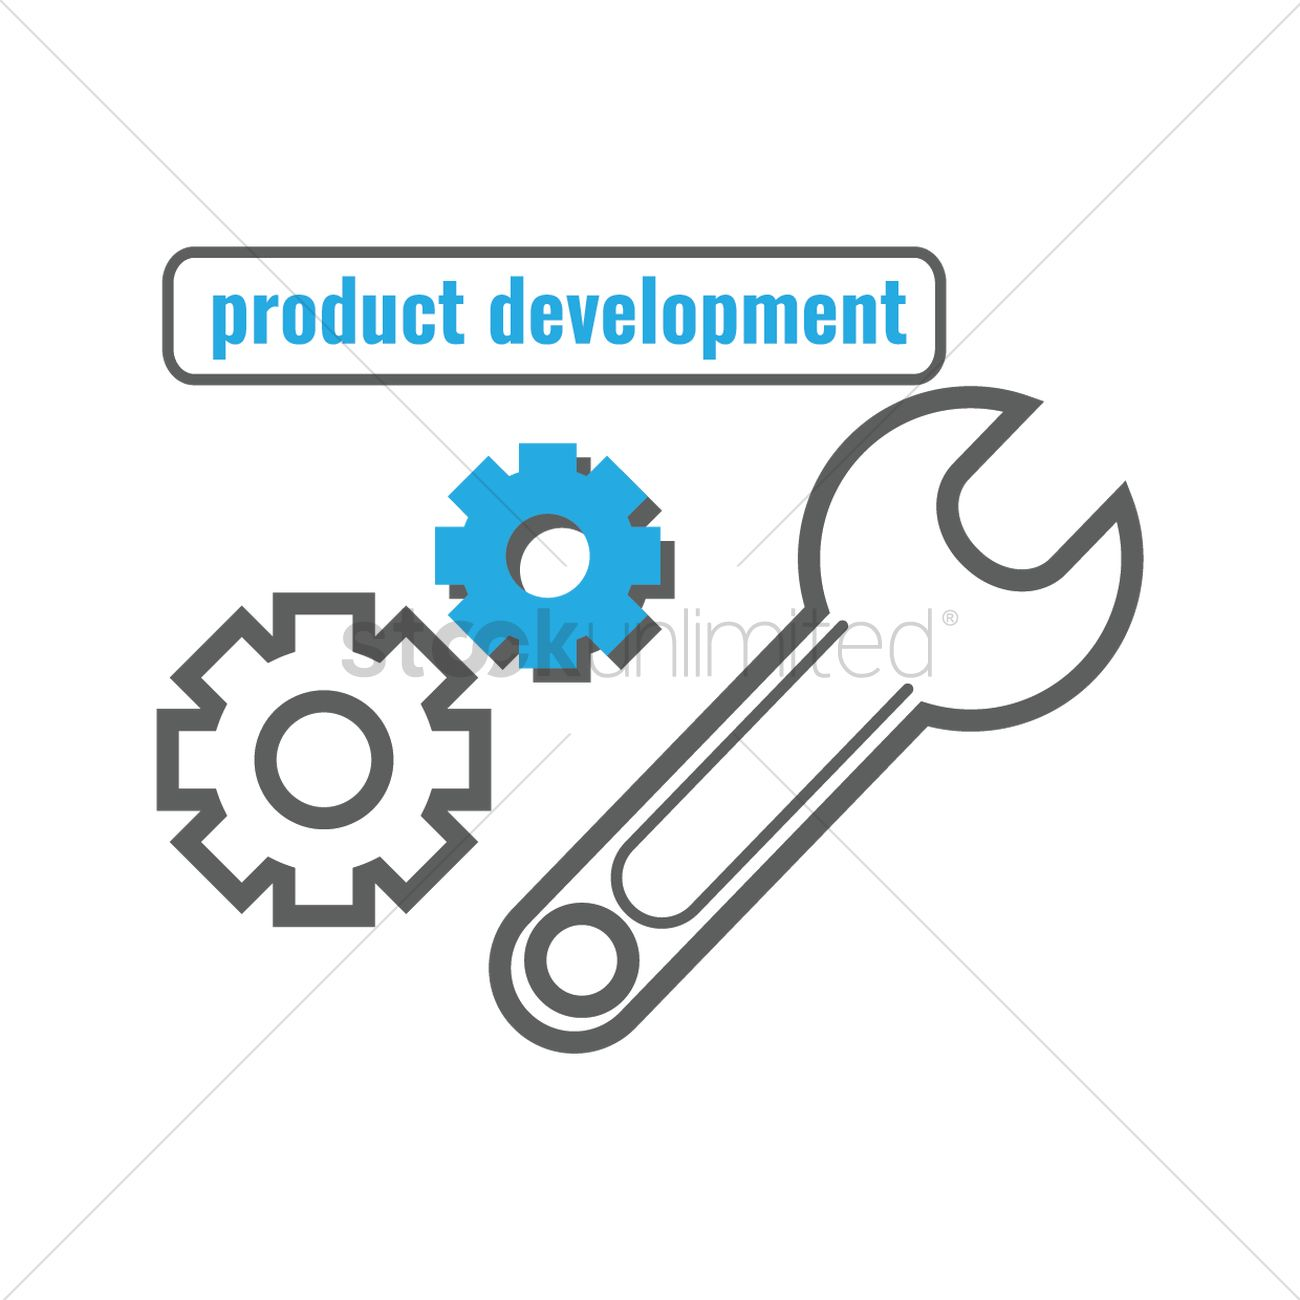 1300x1300 Free Product Development Vector Image